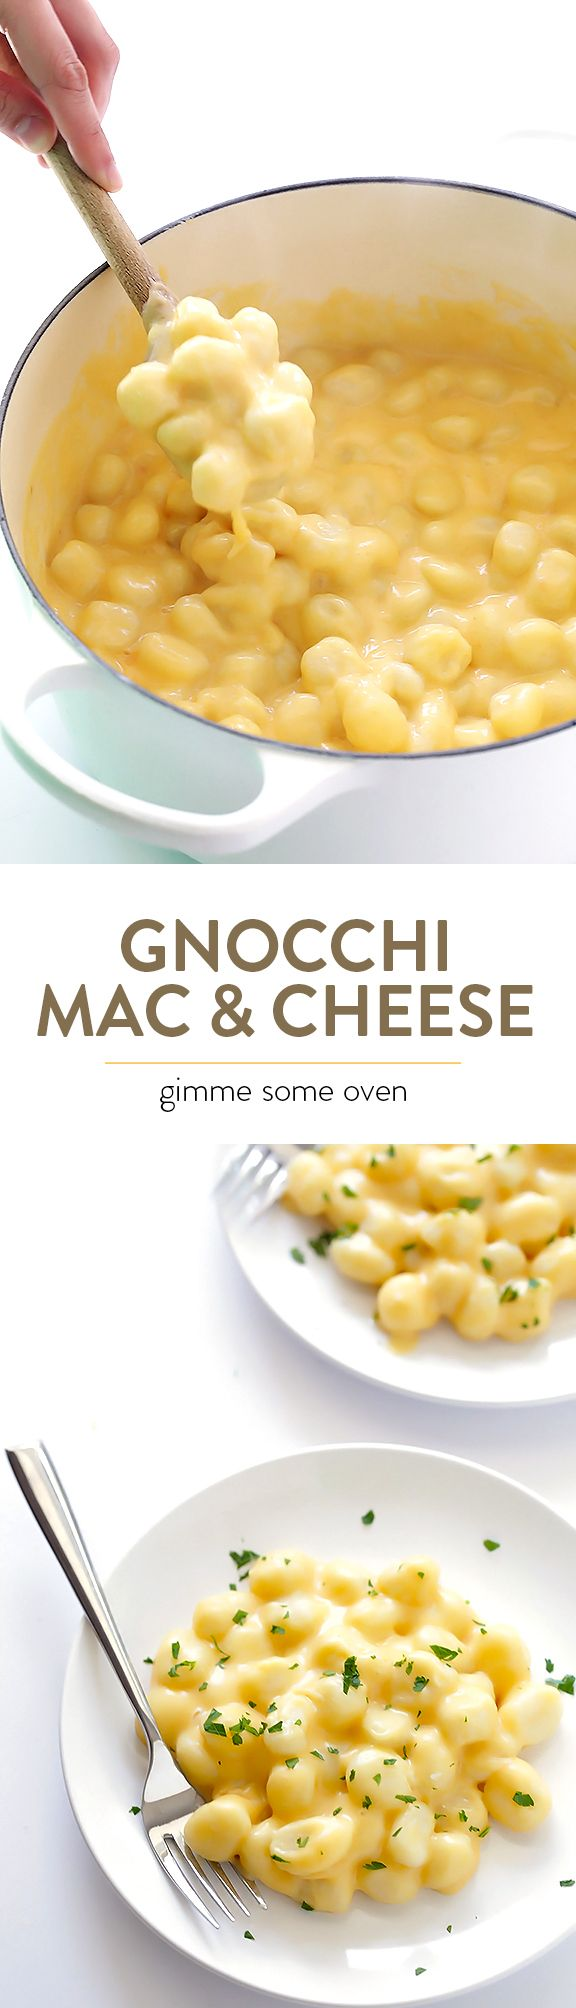 Swap out chewy and delicious gnocchi in place of noodles to make this super tasty mac and cheese!